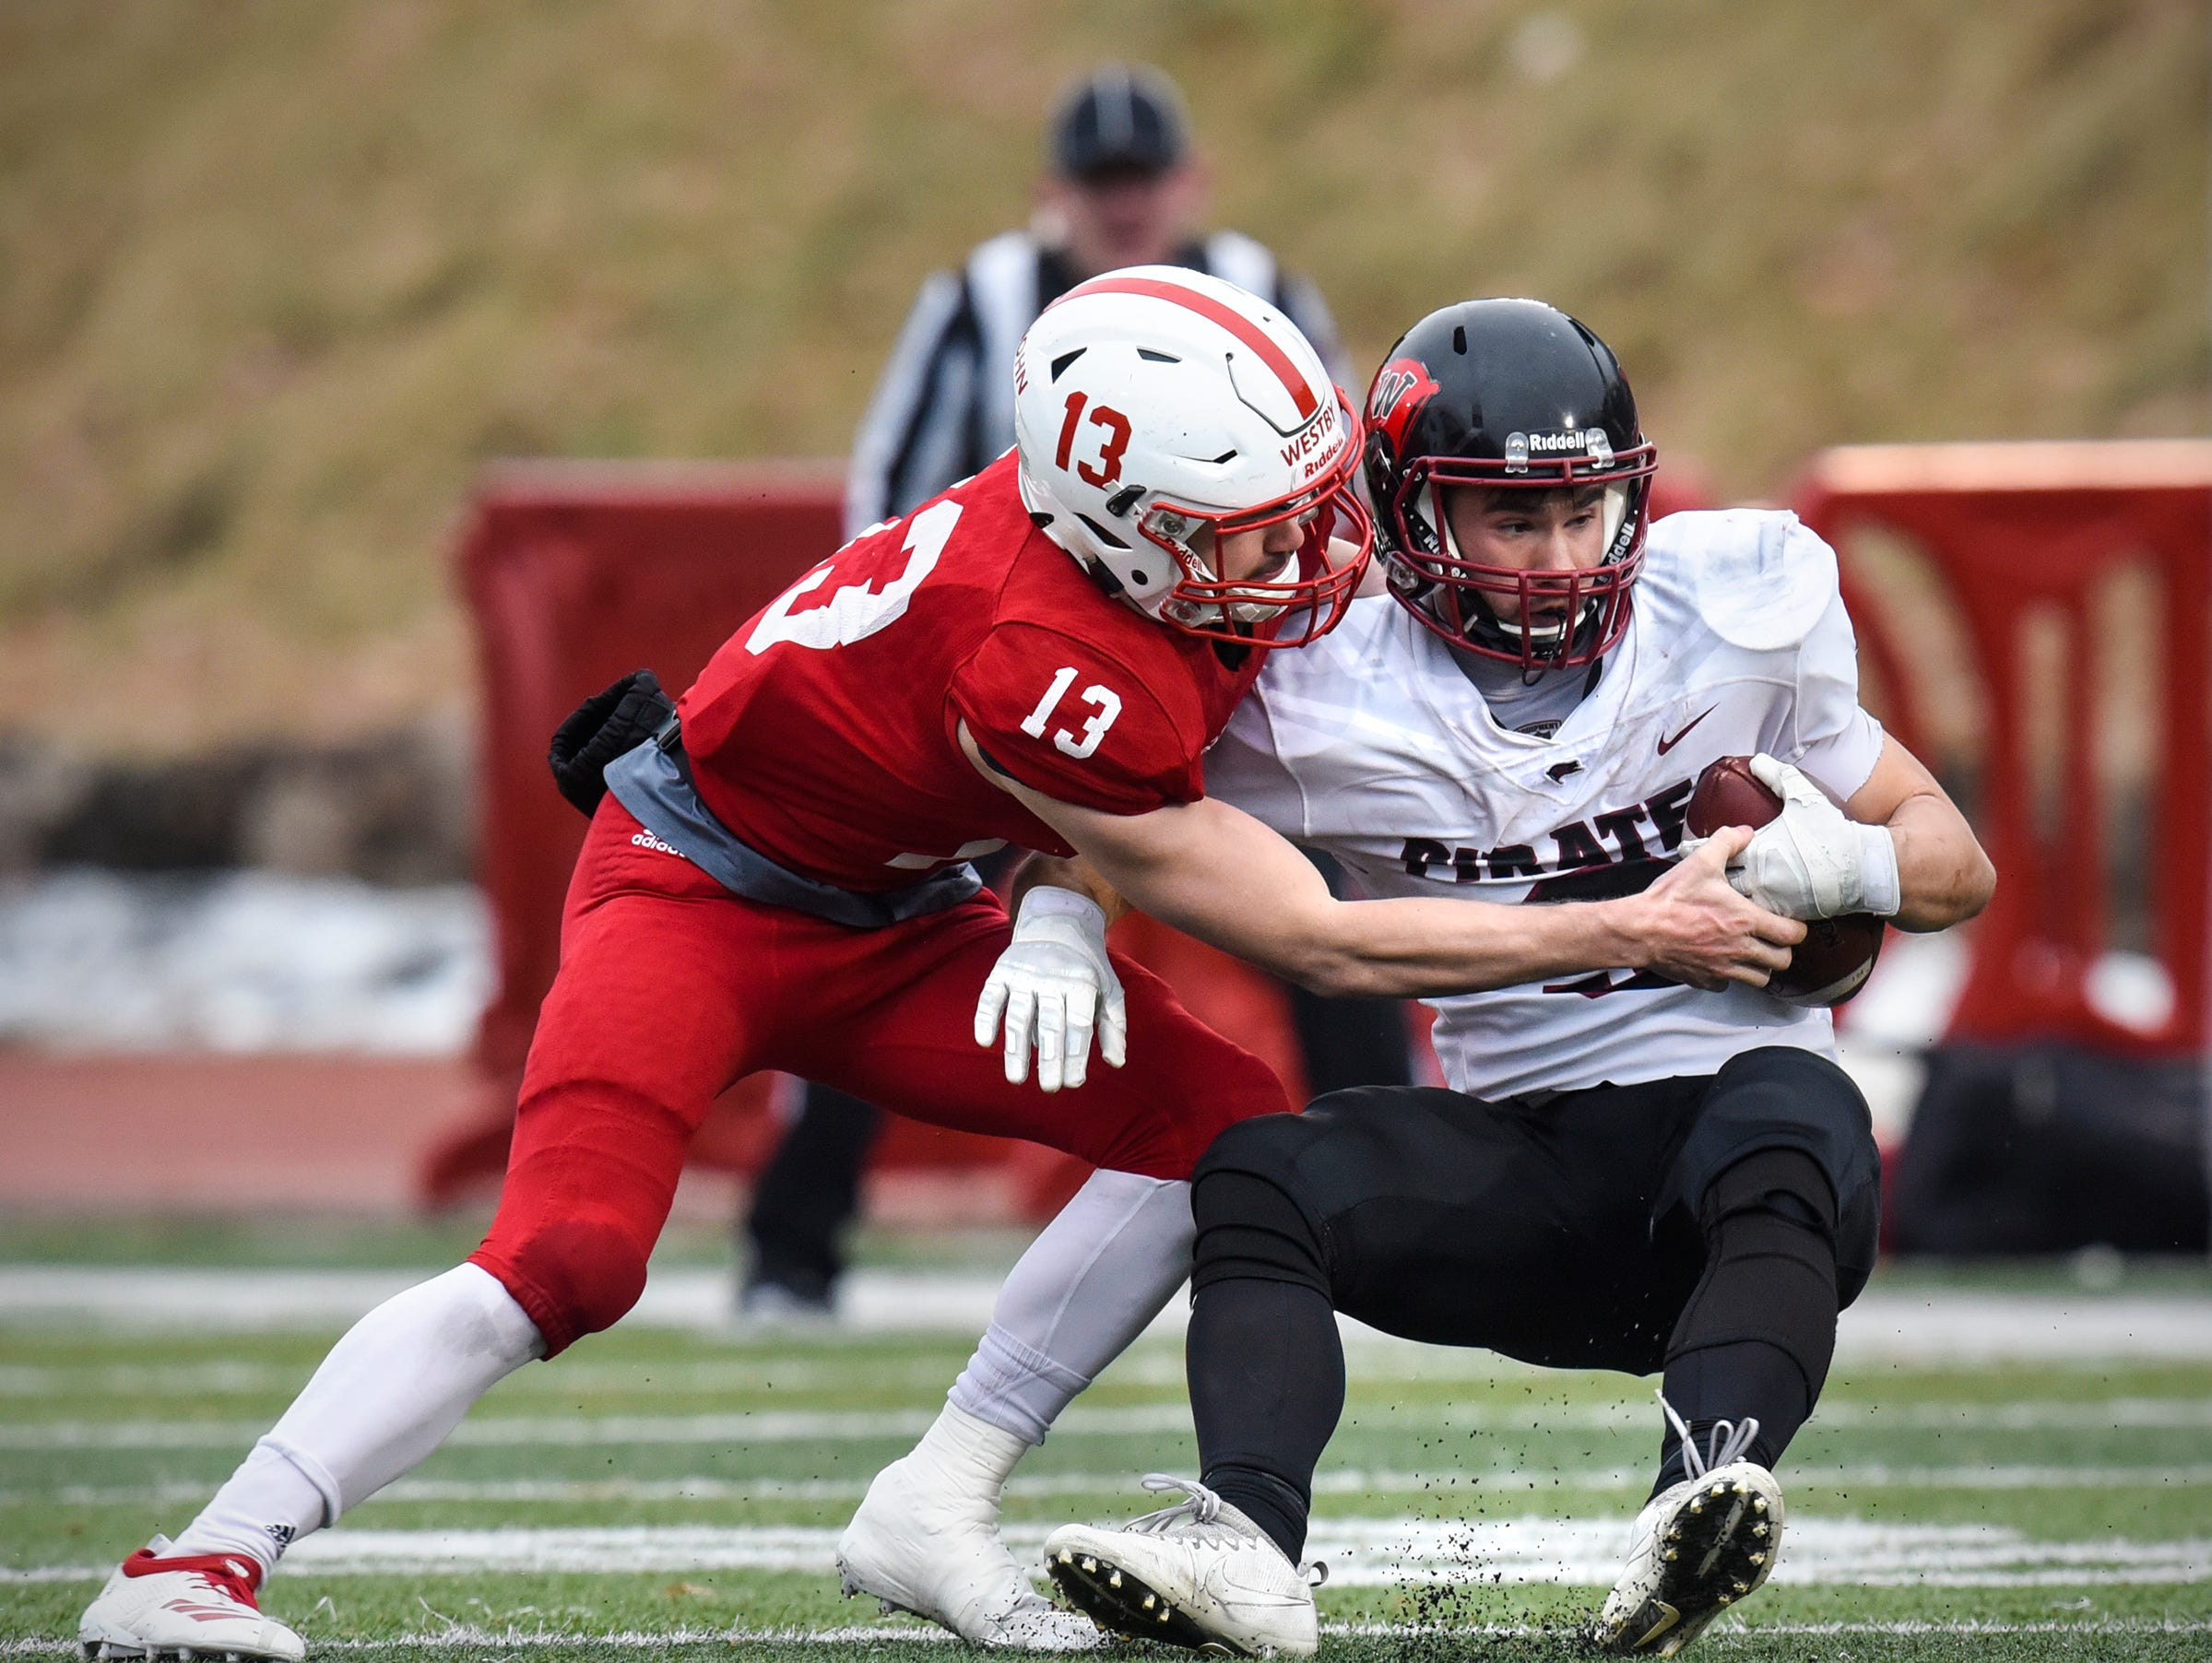 Sam Westby of St. John's tackles Garrett McKay of Whitworth during the Saturday, Nov. 24, game  at Clemens Stadium in Collegeville.